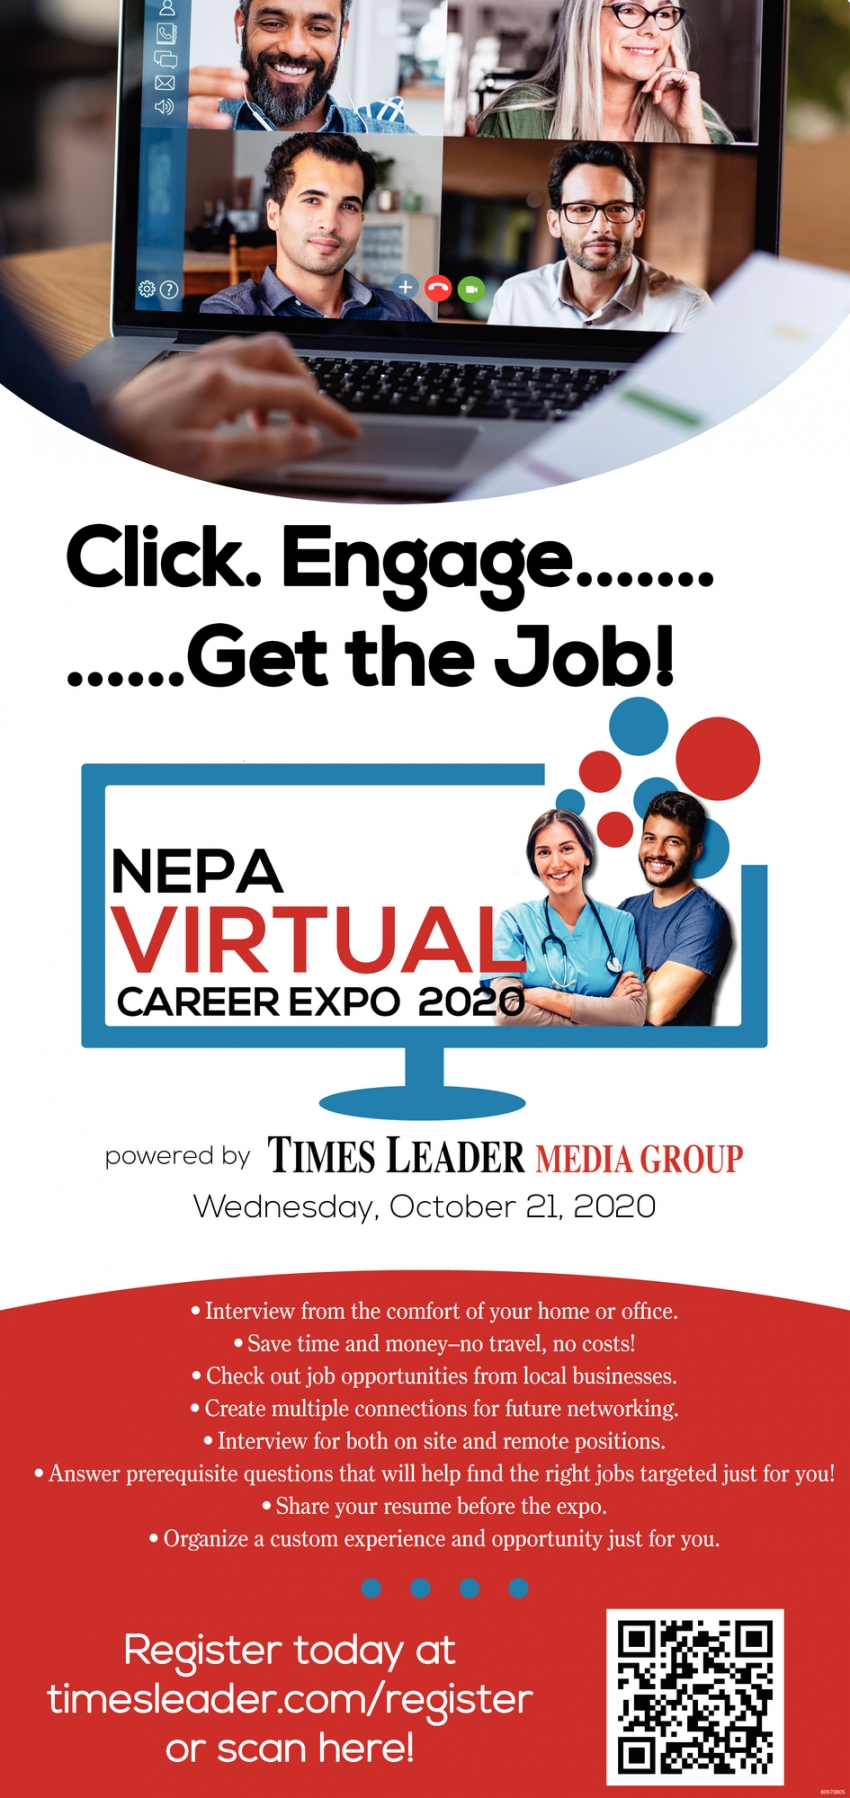 NEPA Virtual Career Expo 2020